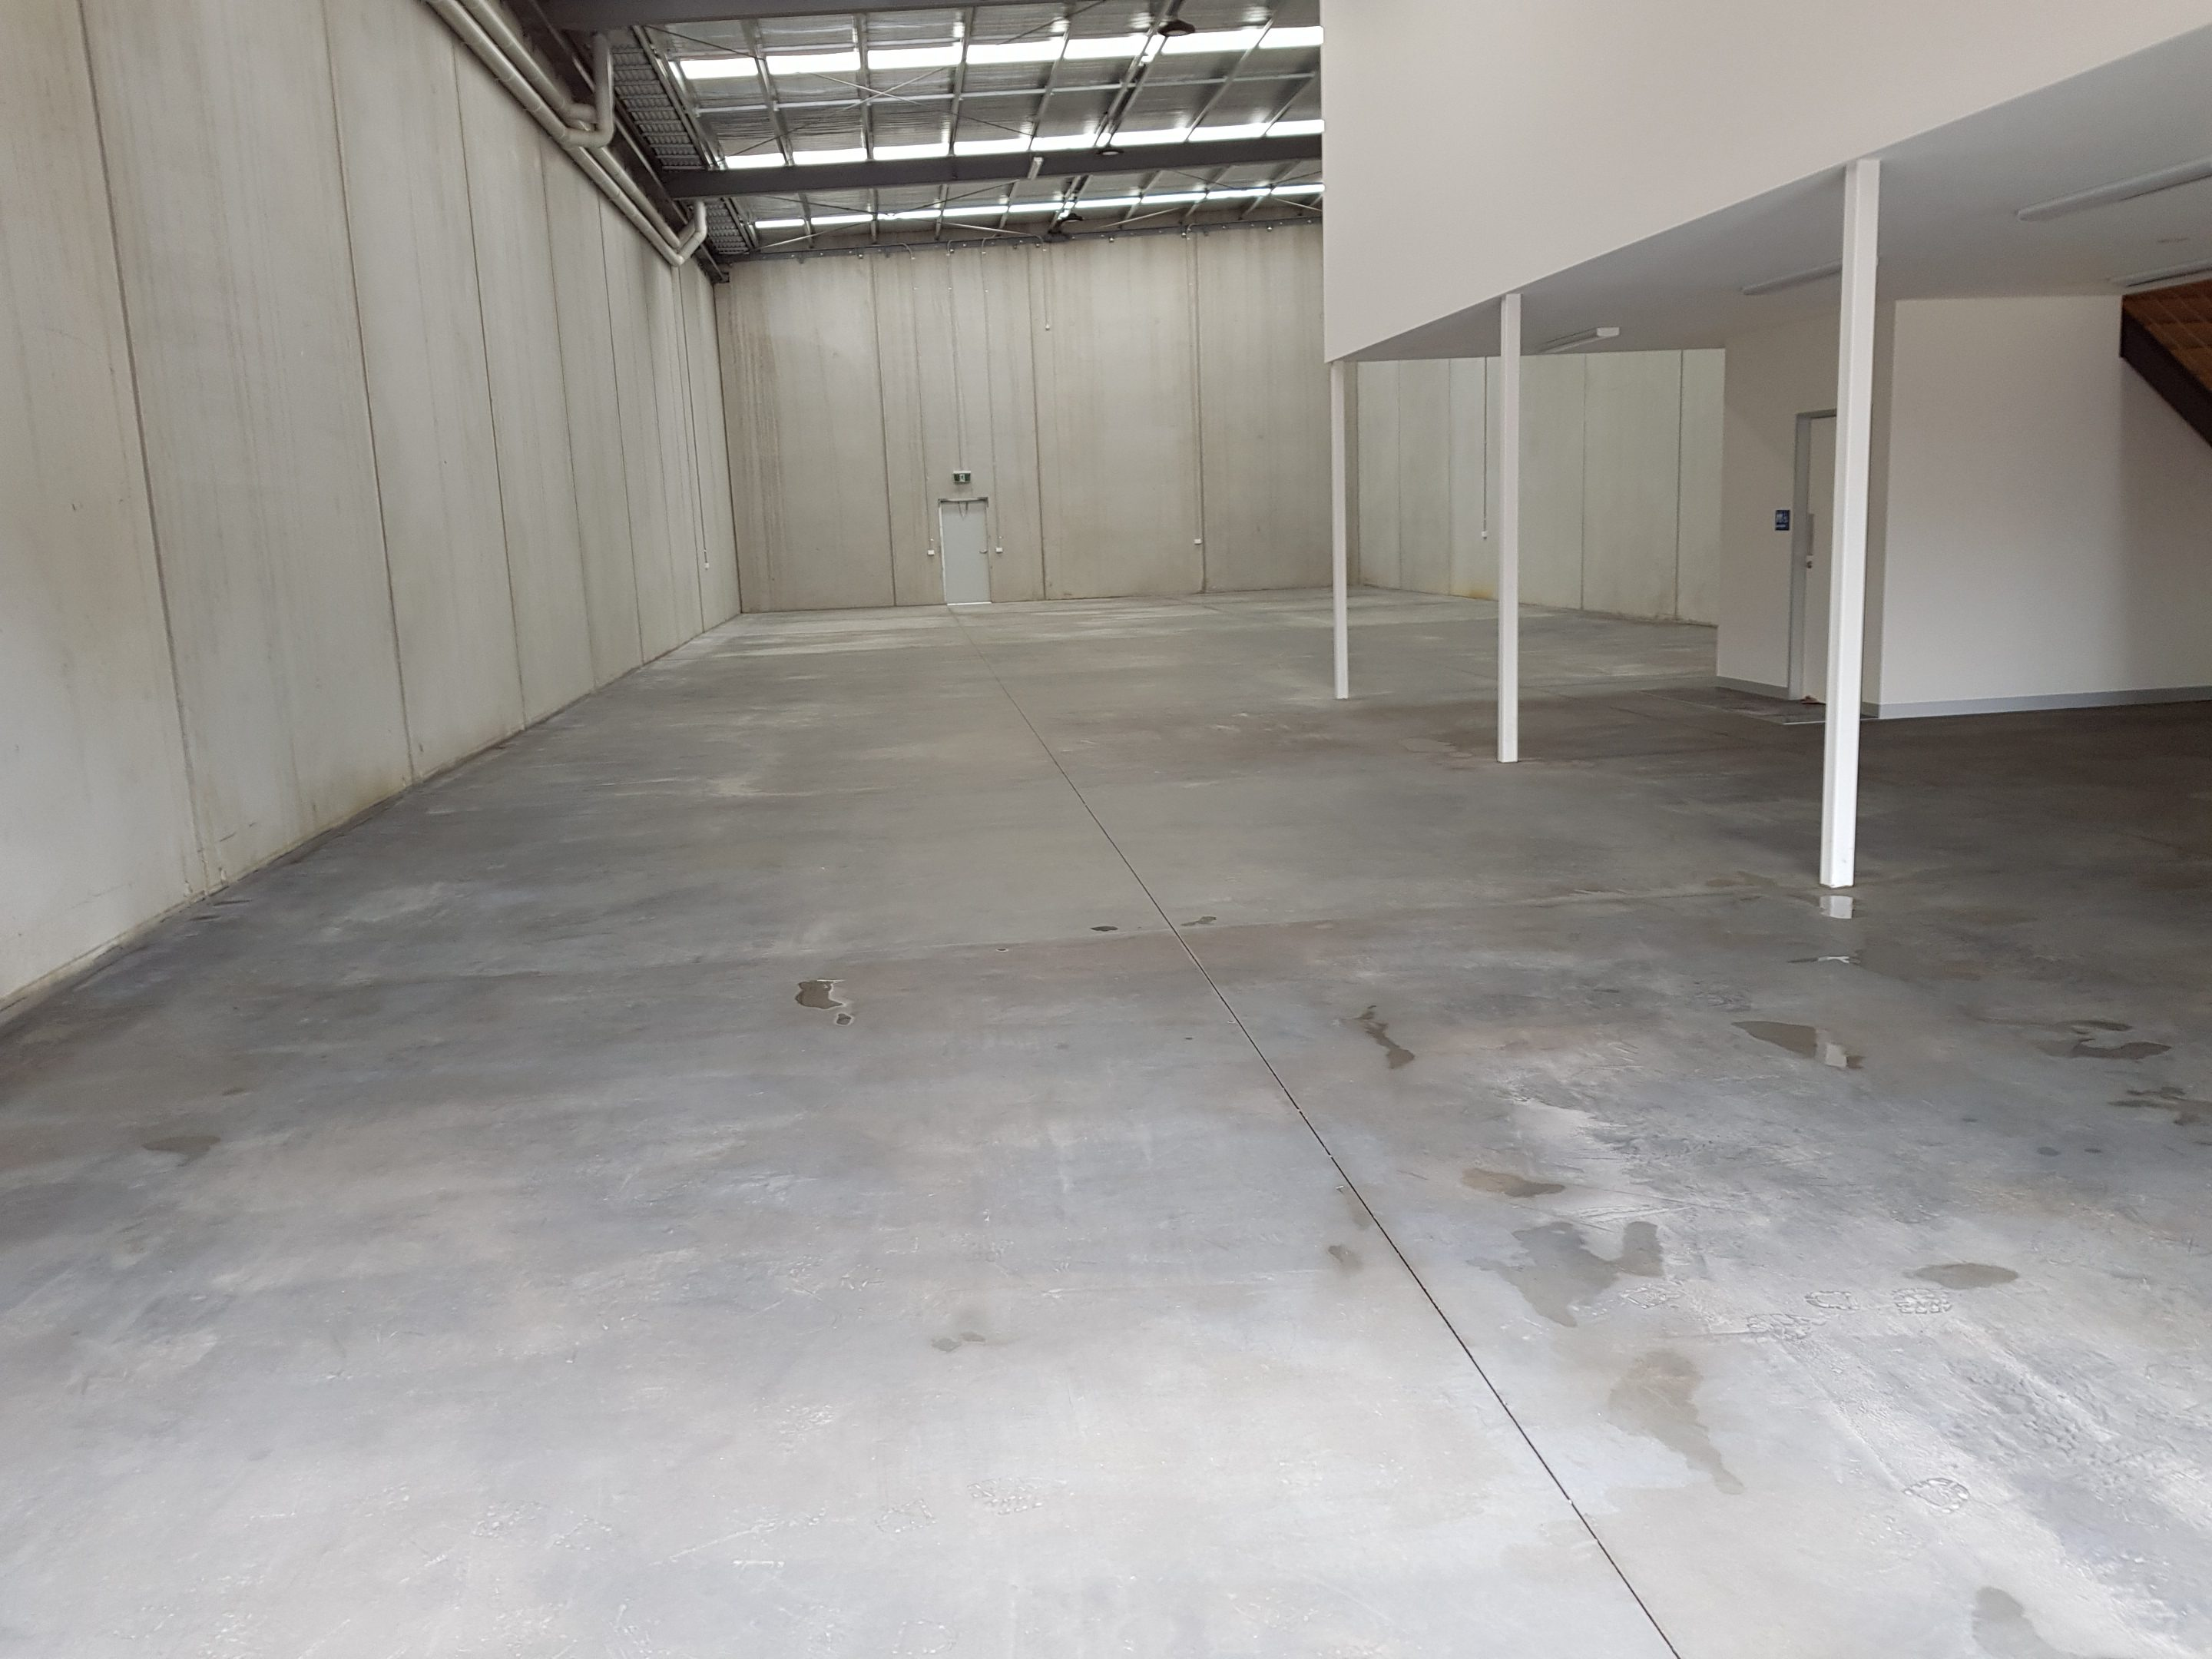 concrete floor being prepared for concrete sealer